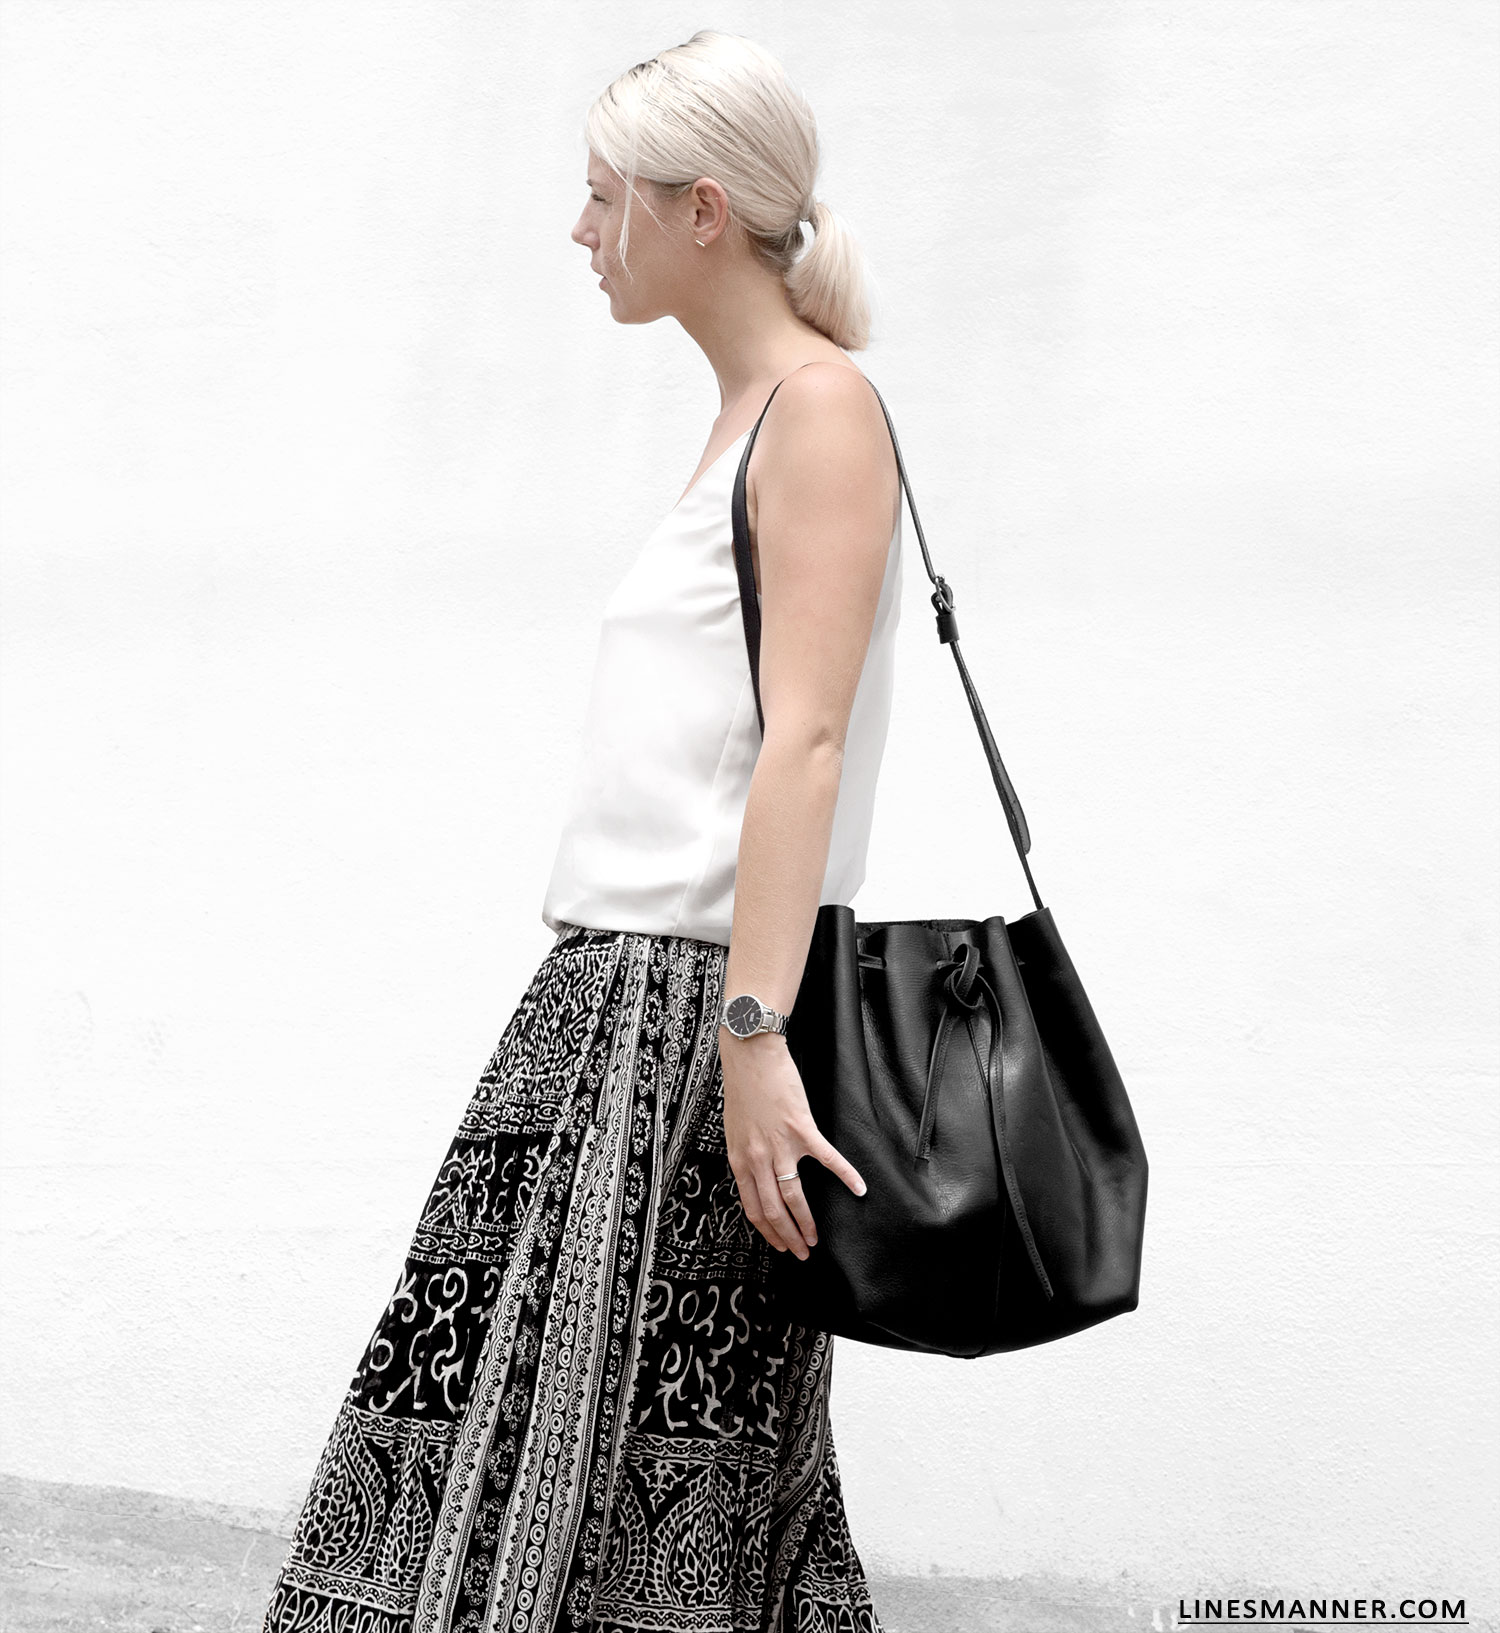 Lines-Manner-Tribal-Monochrome-Airy-Prints-Printed-Black_and_White-MVN-Details-Modern-2